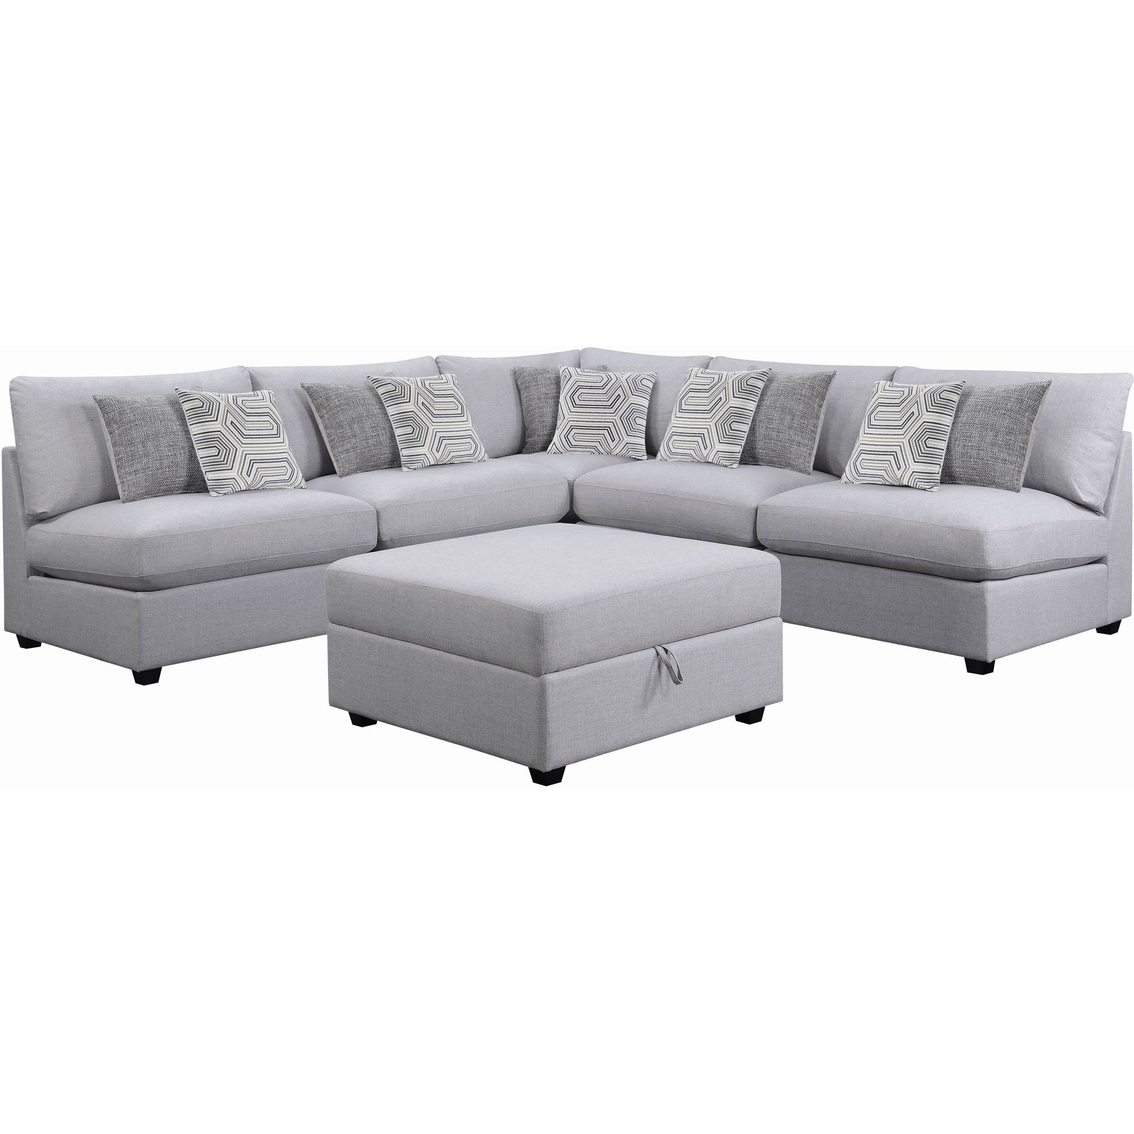 Couches 4 Scott Living Charlotte 5 Pc Modern Sectional With 4 Armless